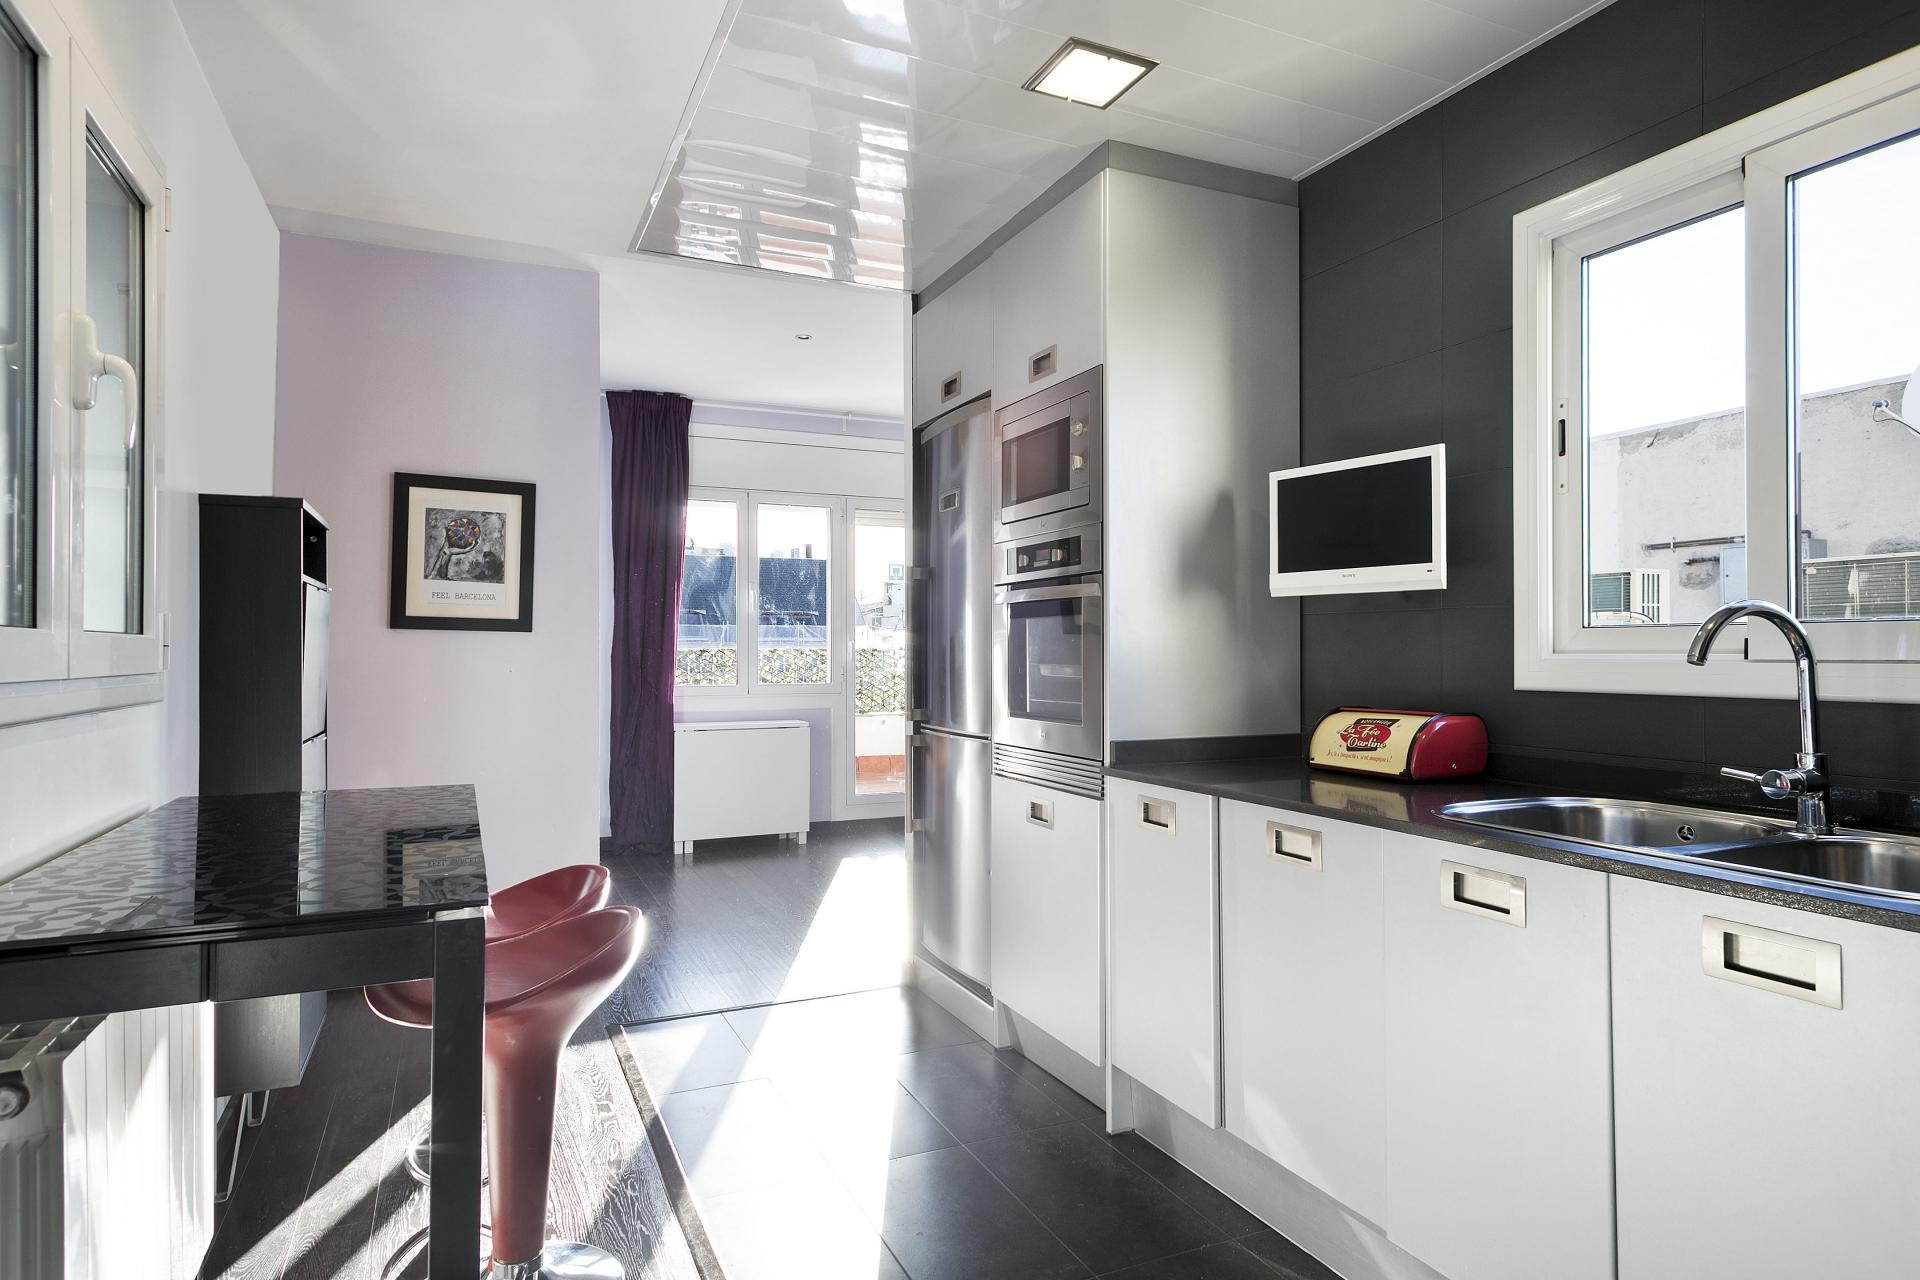 Kitchen at Sunny Serviced Apartments, Eixample, Barcelona - Citybase Apartments